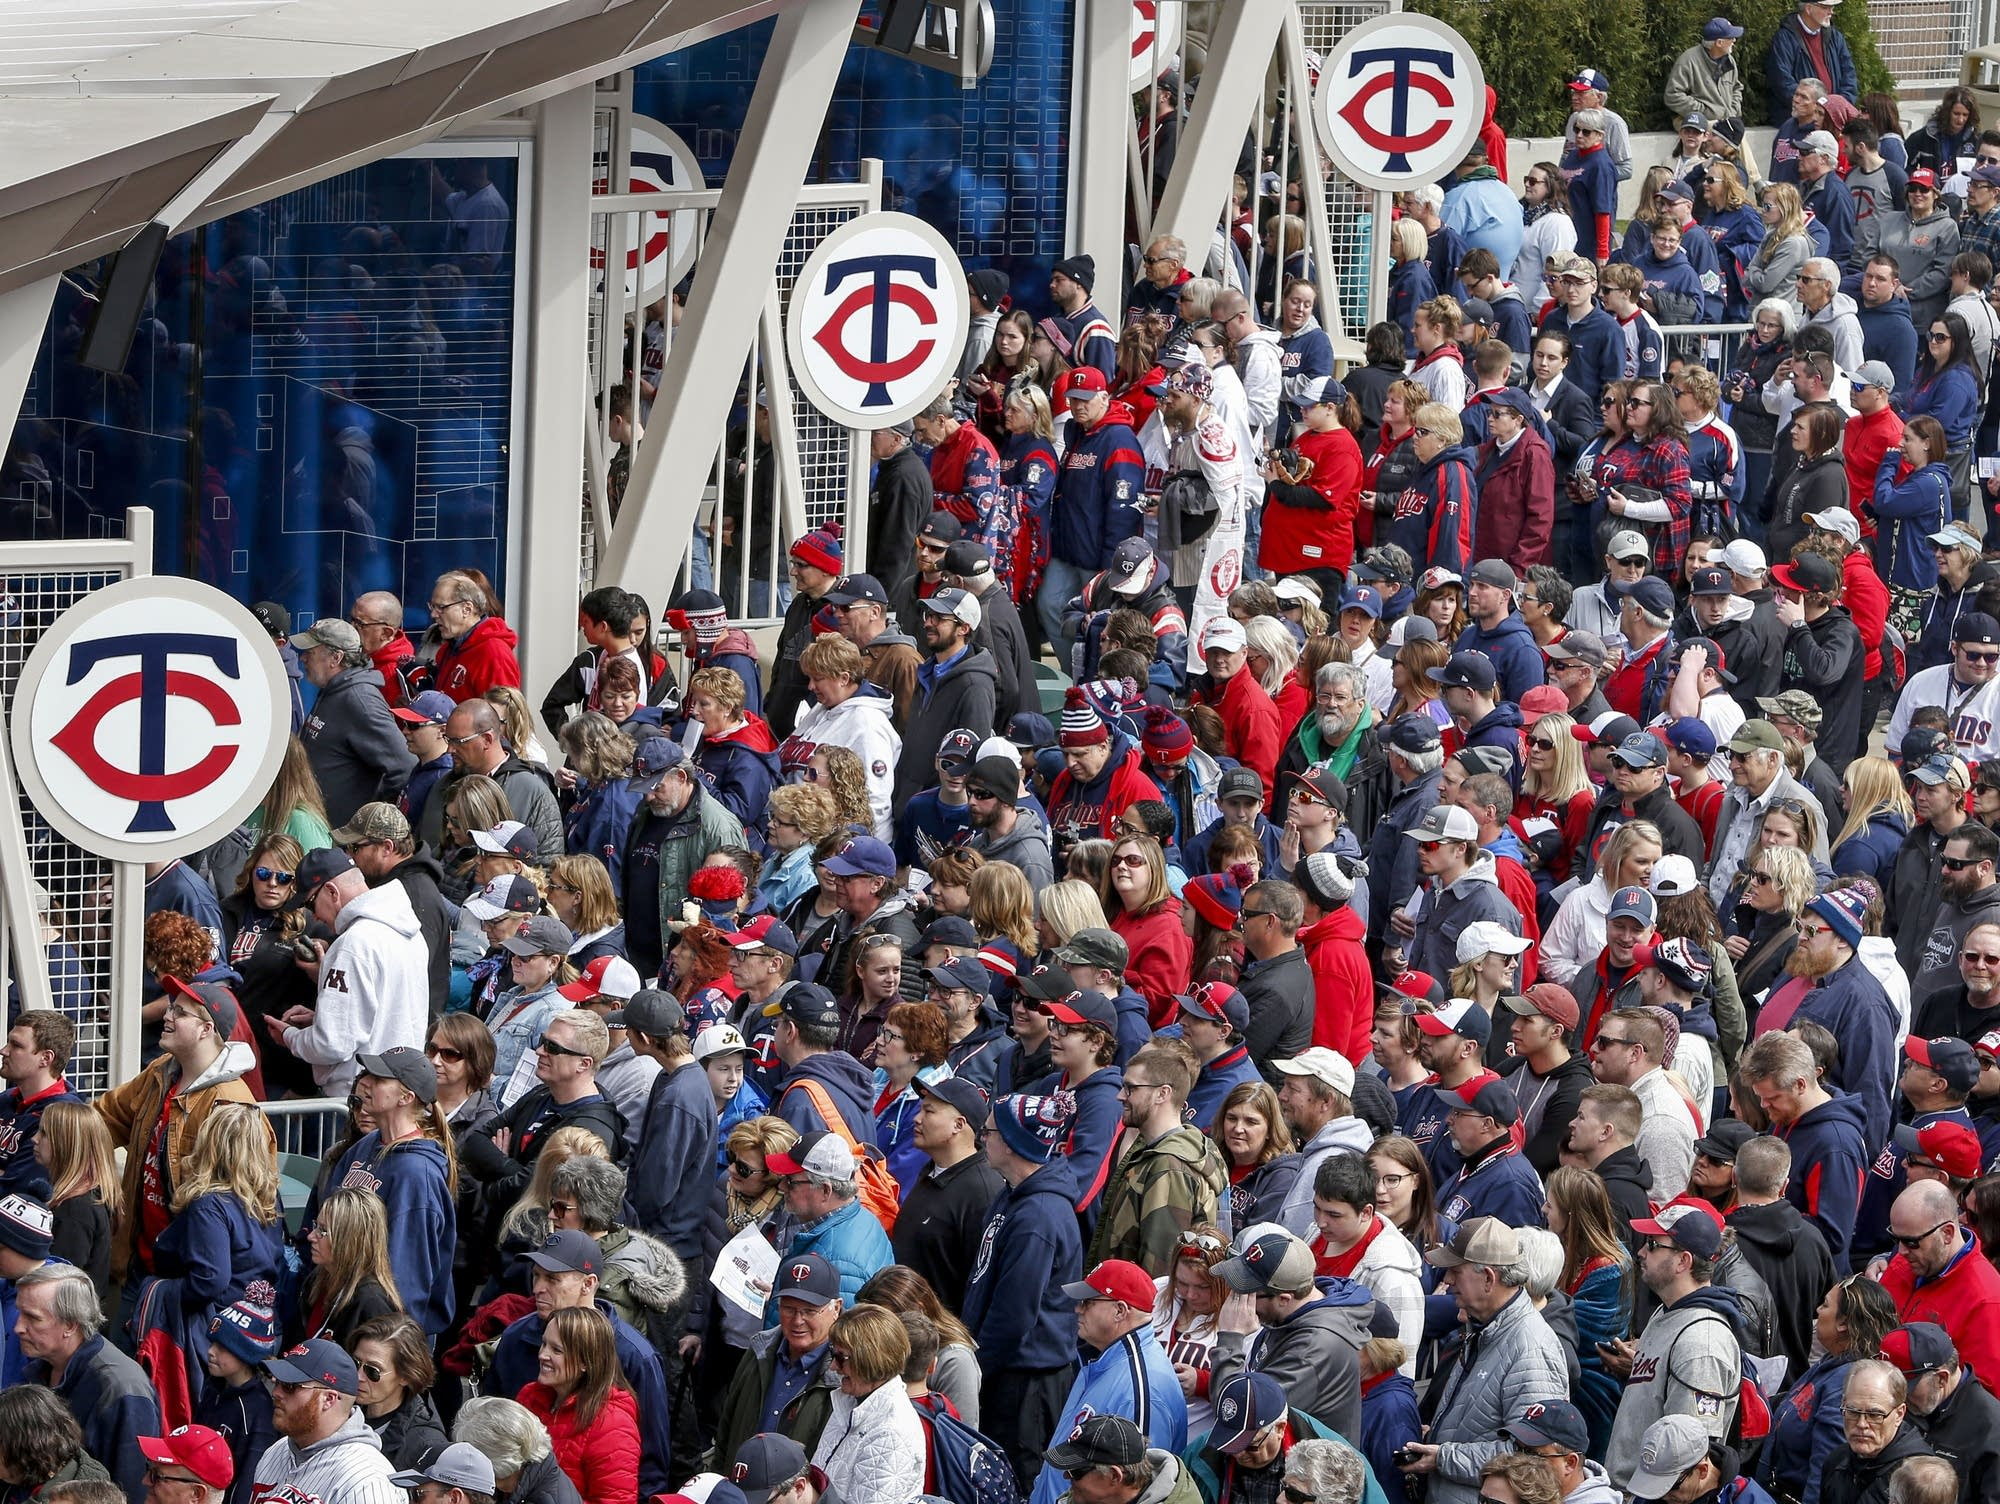 921f784e2cc Twins eye new restrictions on what fans can carry into Target Field ...